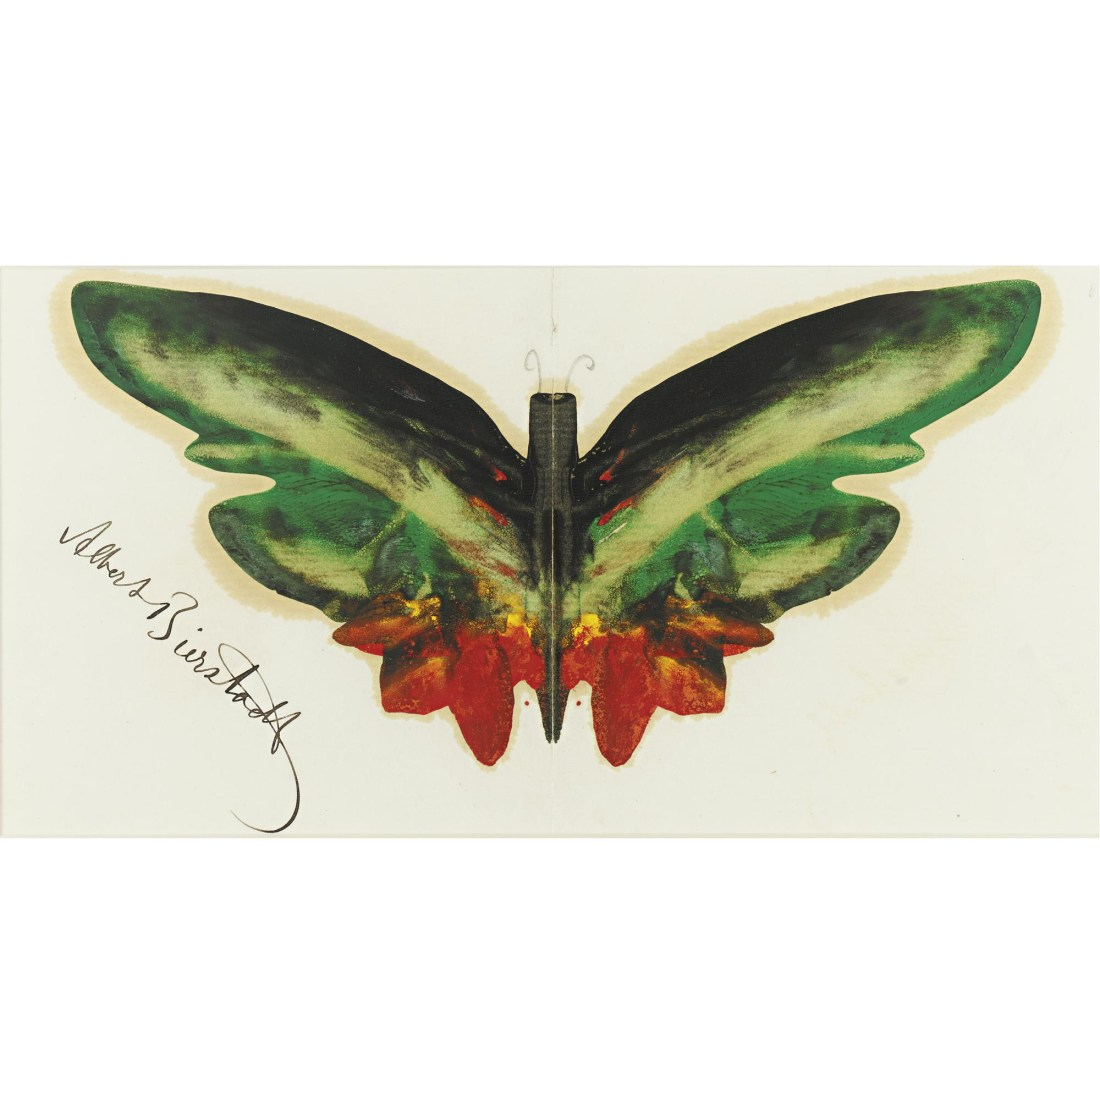 Green butterfly. No date.